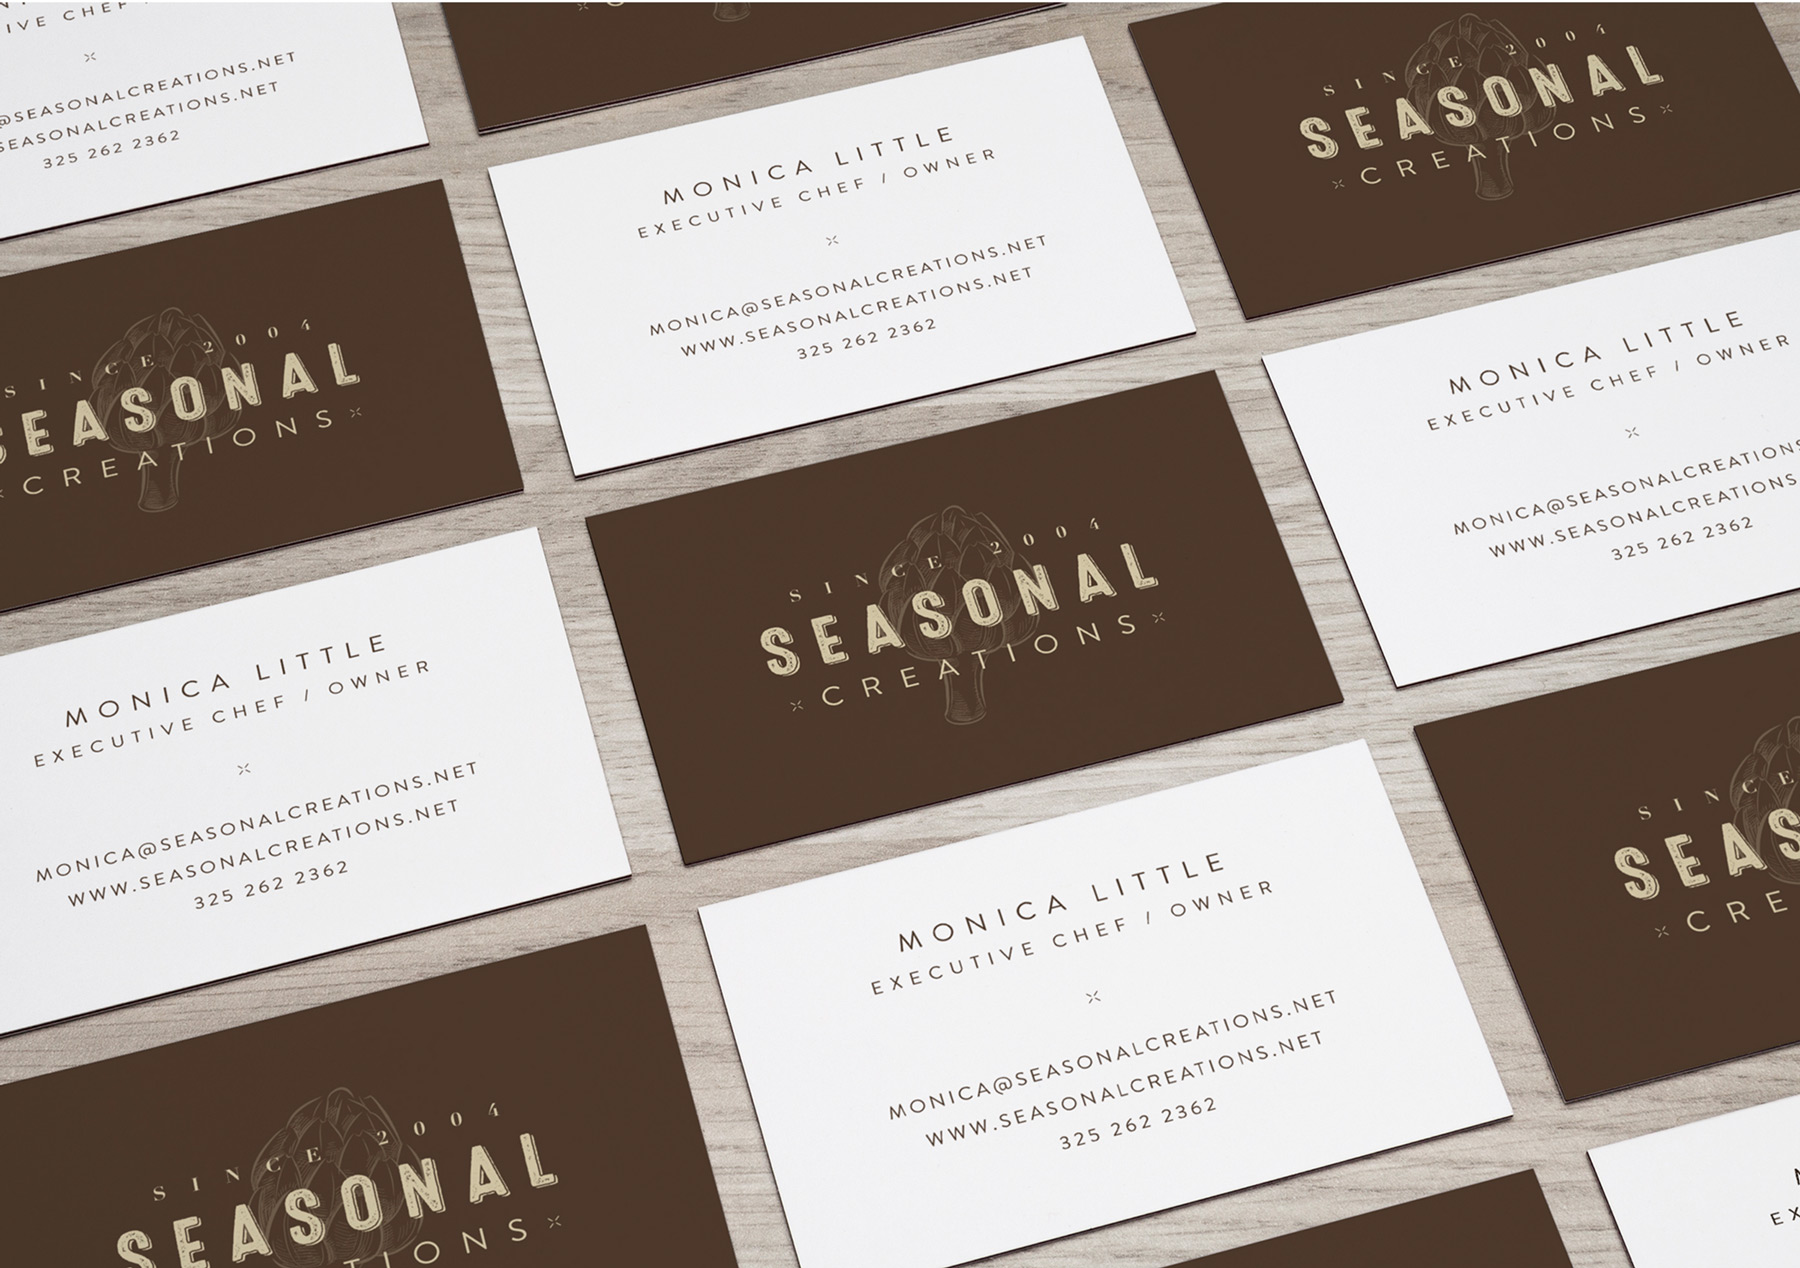 LDD WORK Seasonal Creations Business Cards